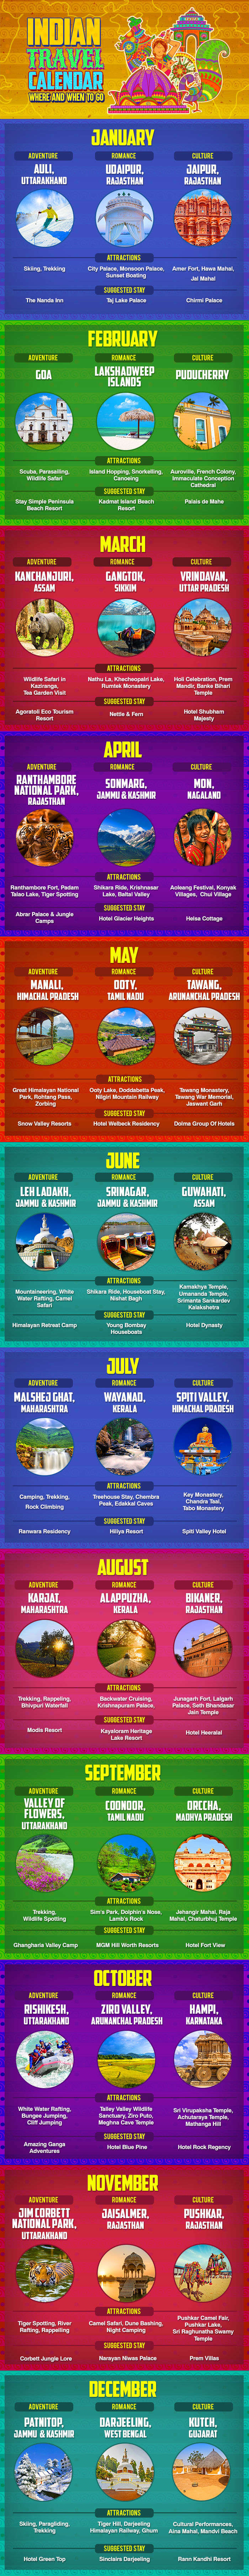 India Travel Calendar Infographic